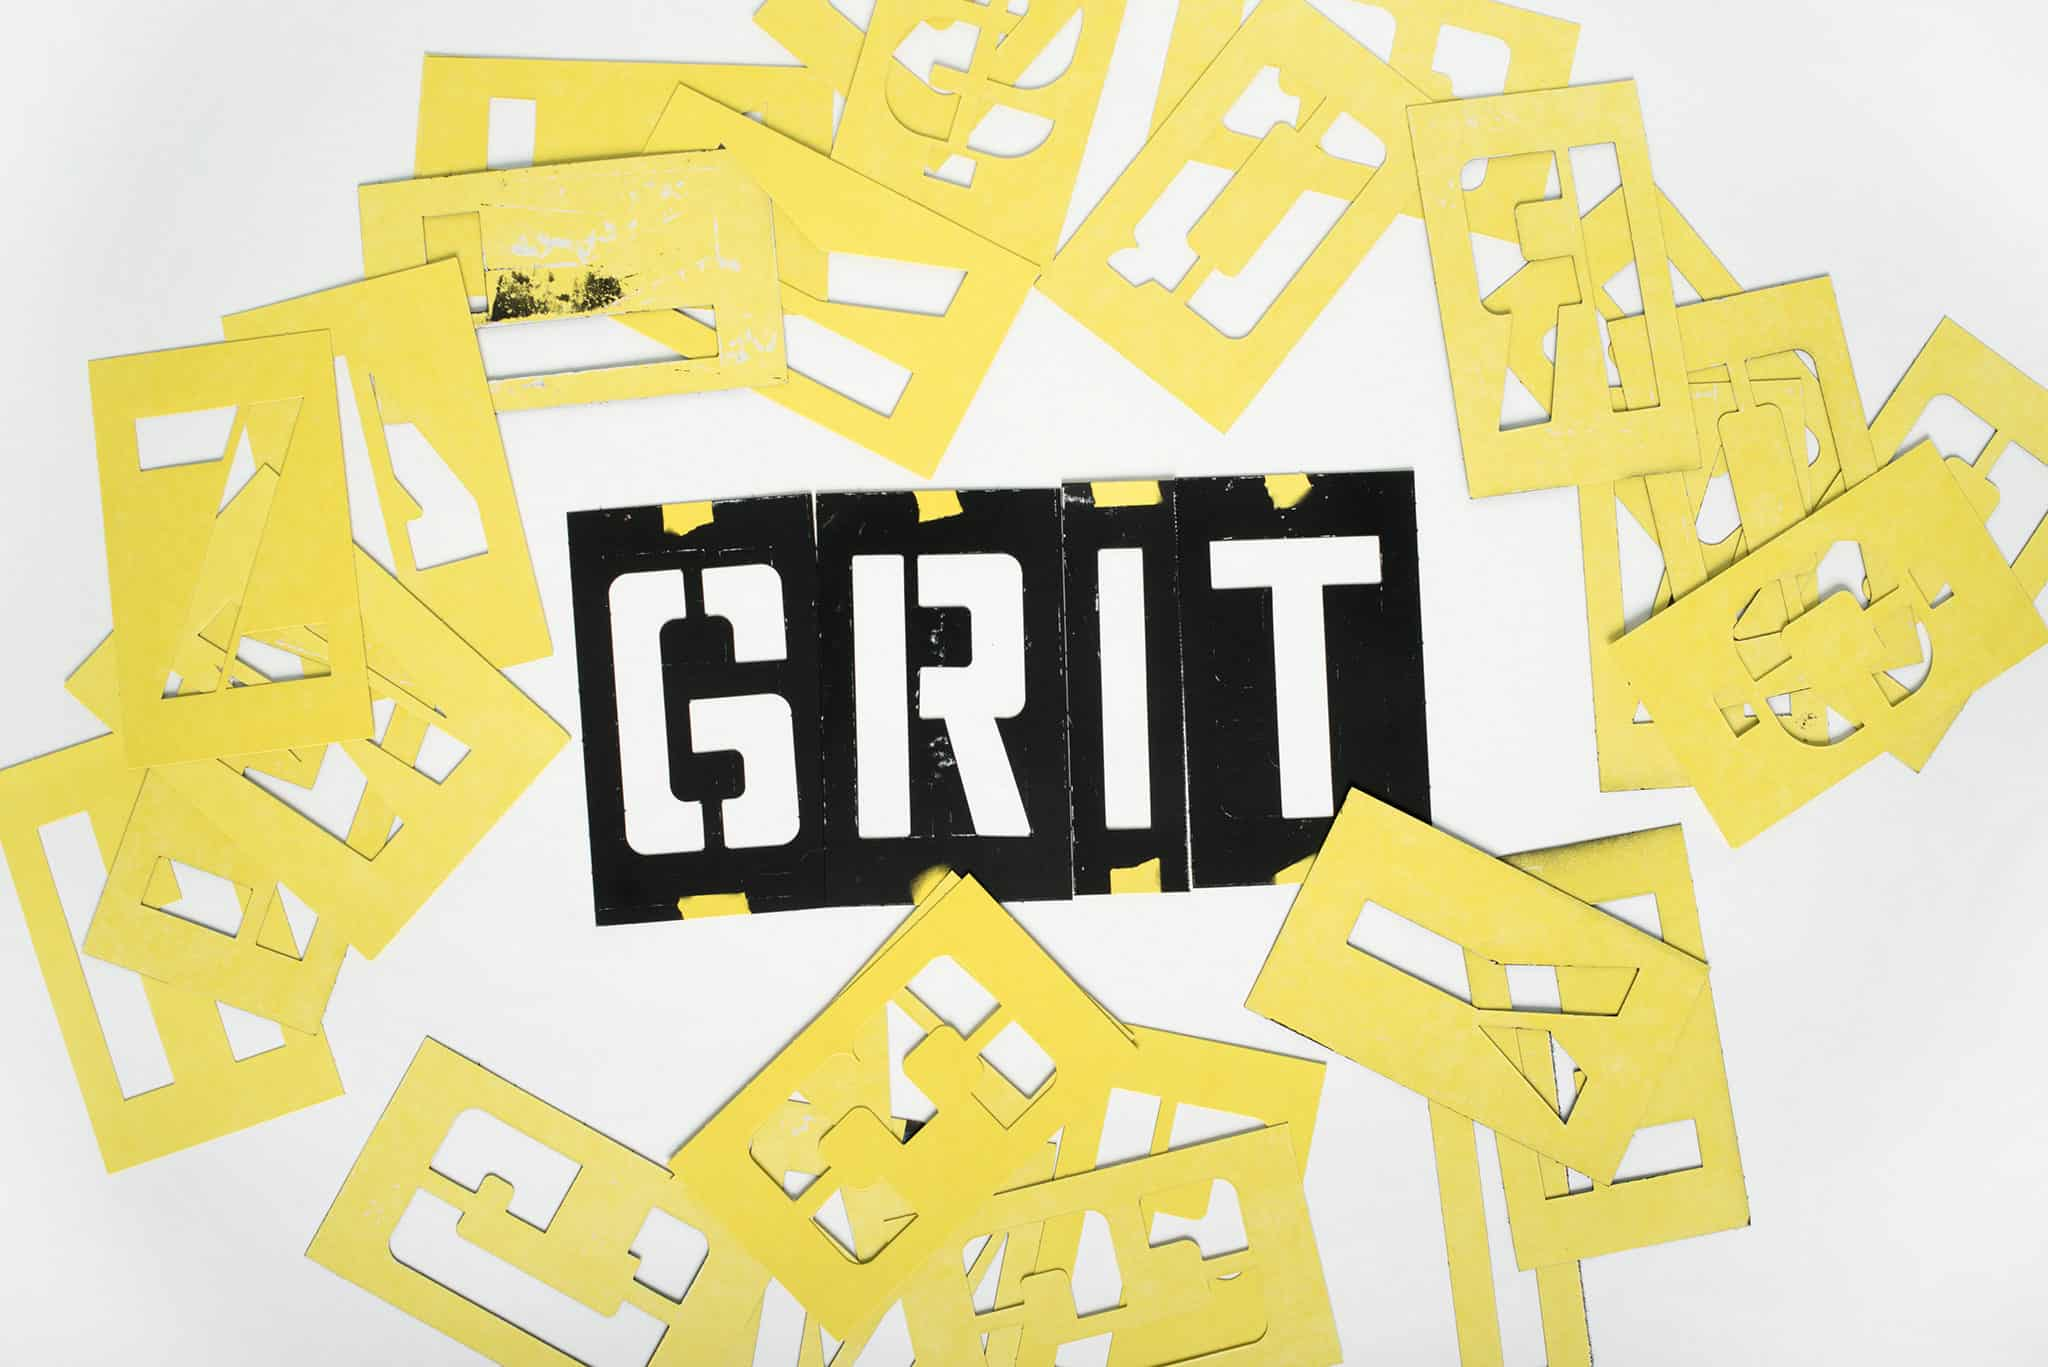 Stencils used to create logo design for Grit Grocery | Designed by Field of Study: A branding and graphic design consultancy | Houston TX | Jennifer Blanco & John Earles